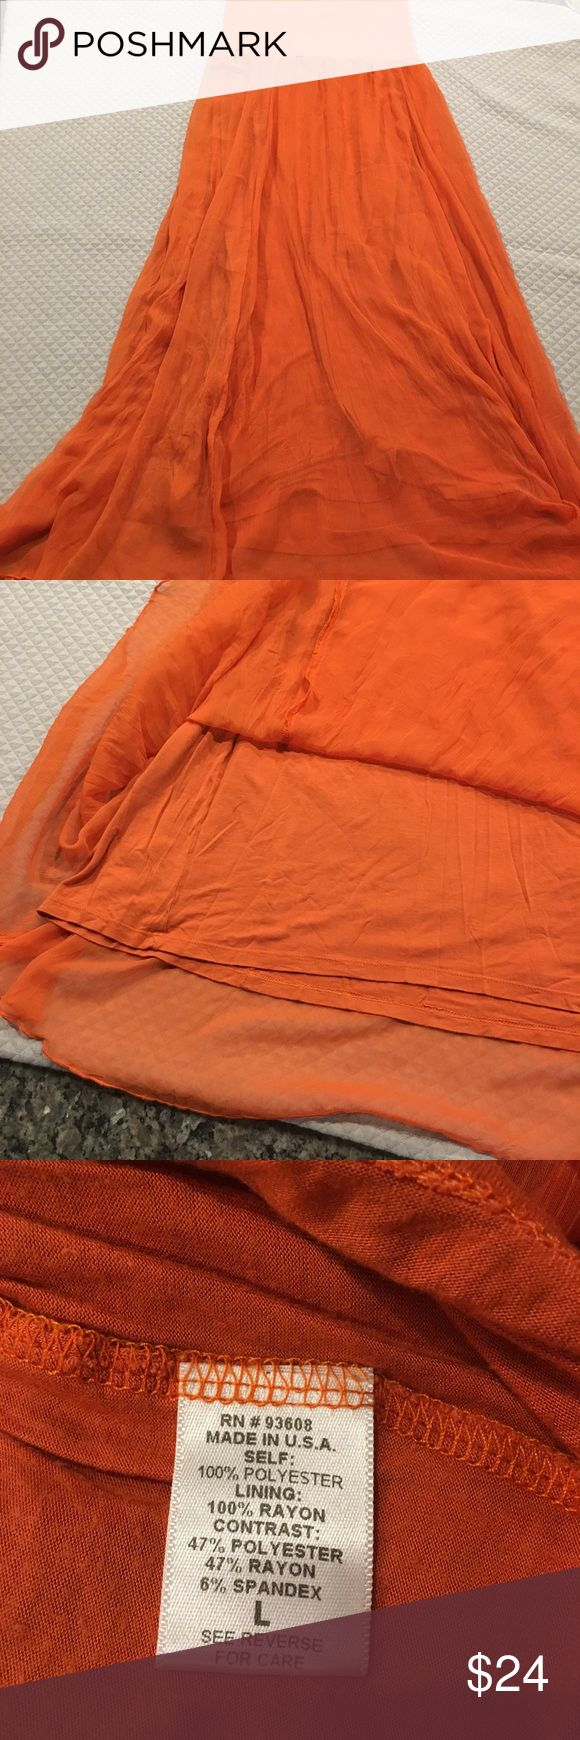 Burnt Orange Maternity Maxi Skirt Great condition // worn once // rayon, poly, spandex blend // lined with flowy outer layer // stretchy band at the top // technically maternity but could be worn by anyone // 45 inches in length max and mia Skirts Maxi